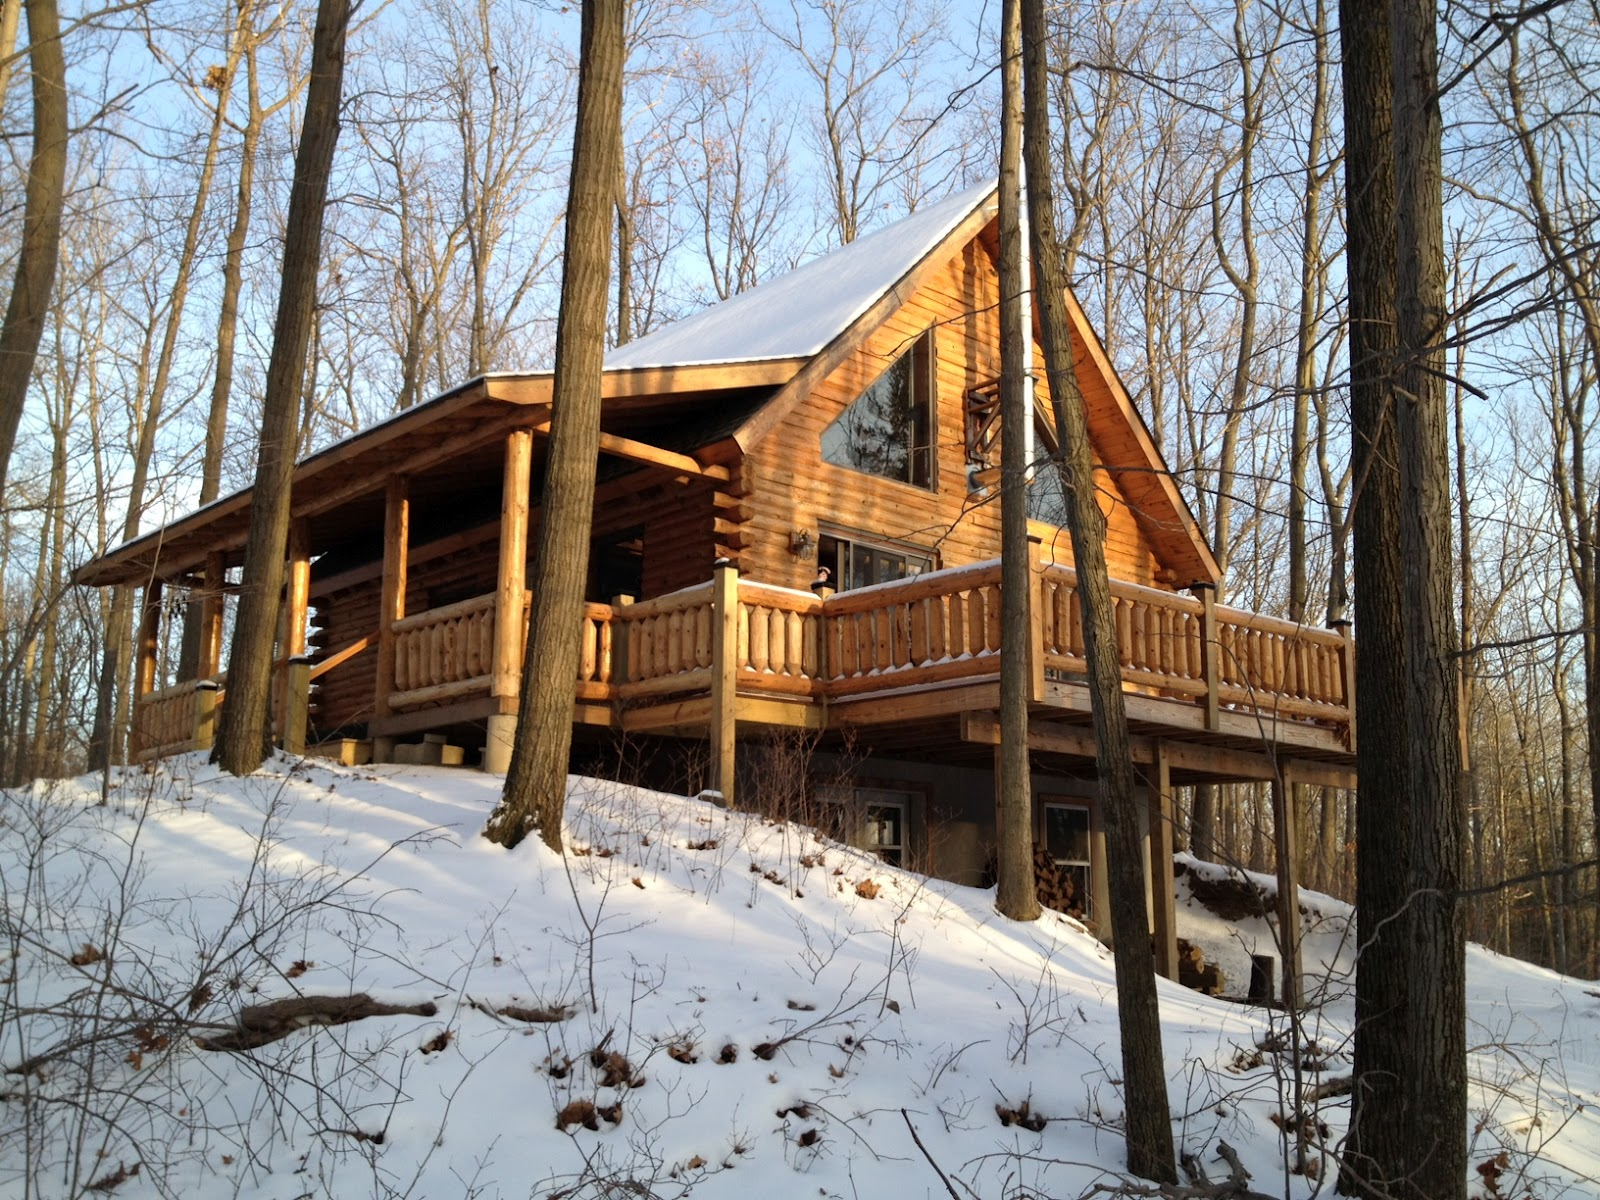 National alliance to end homelessness upstate new york cabin for Log cabins upstate ny